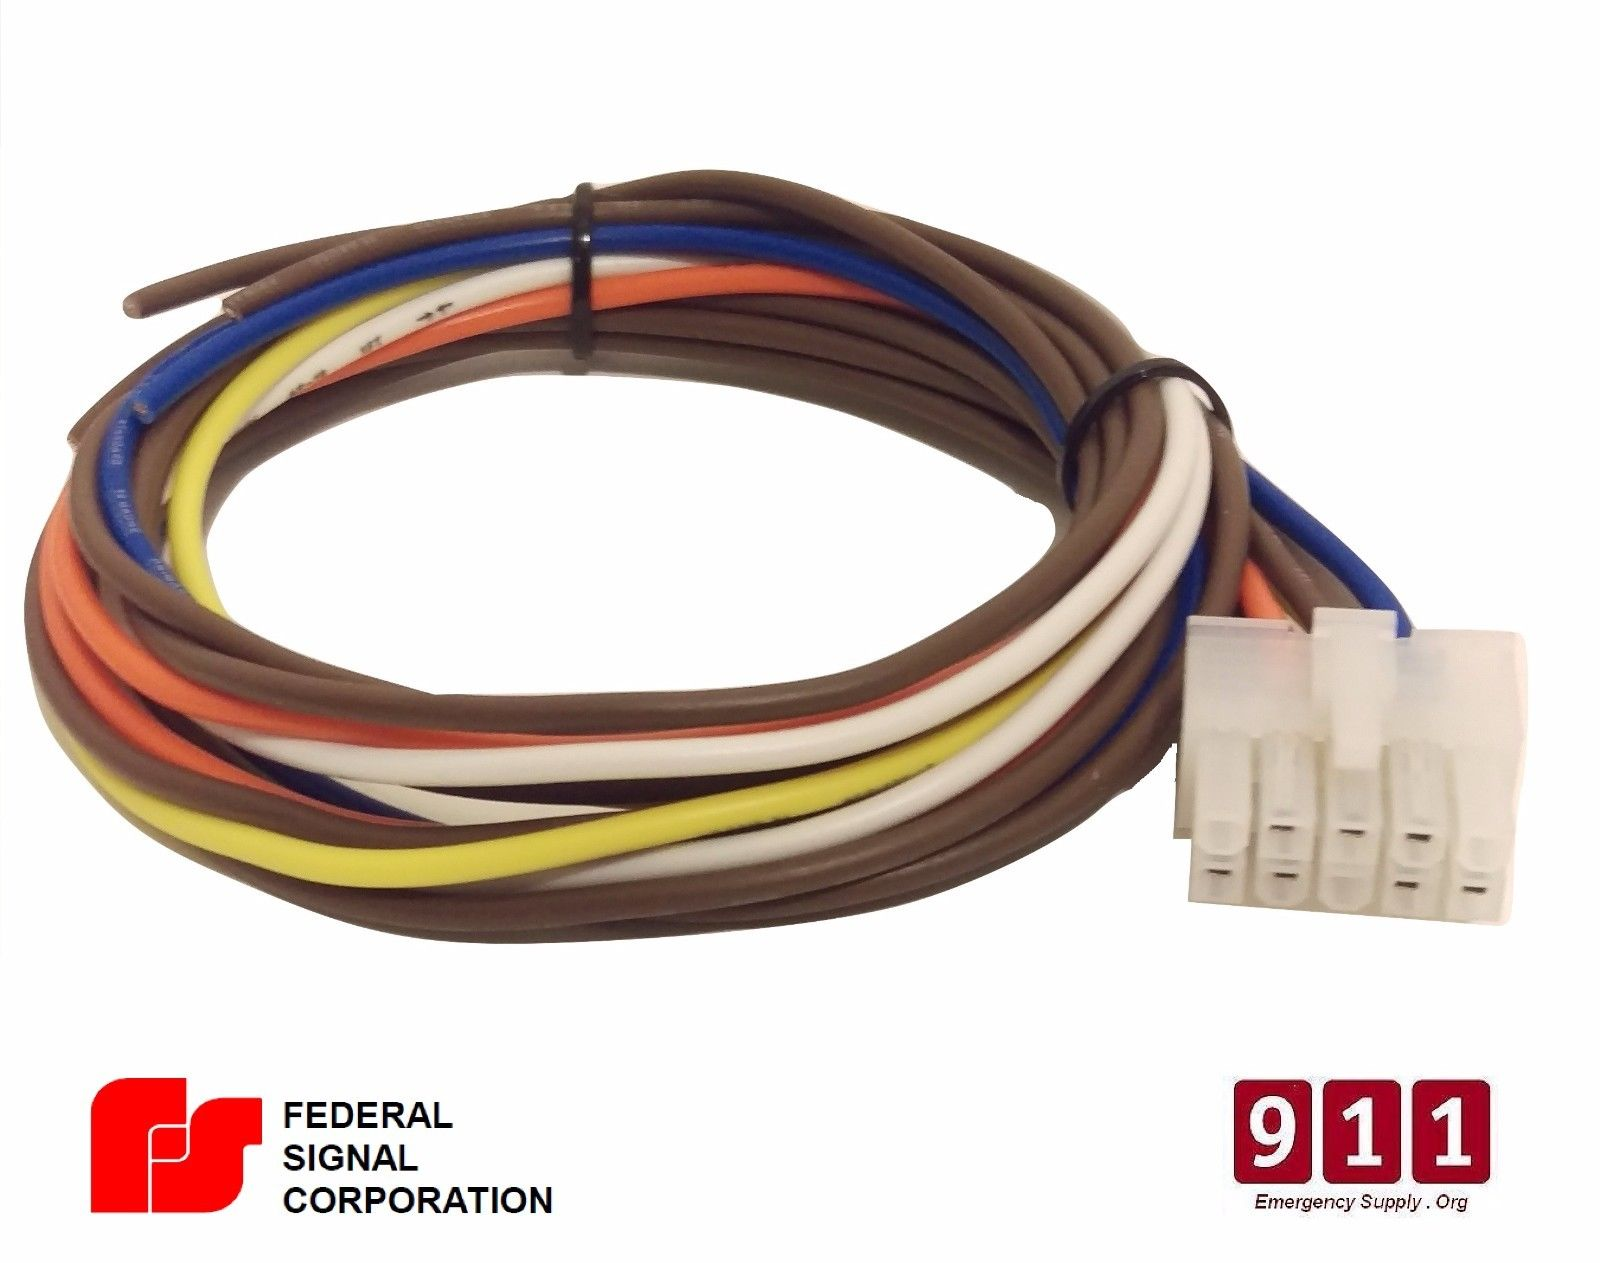 federal signal pa300 siren wiring diagram viper alarm 350hv power harness 10 pin cable 690009